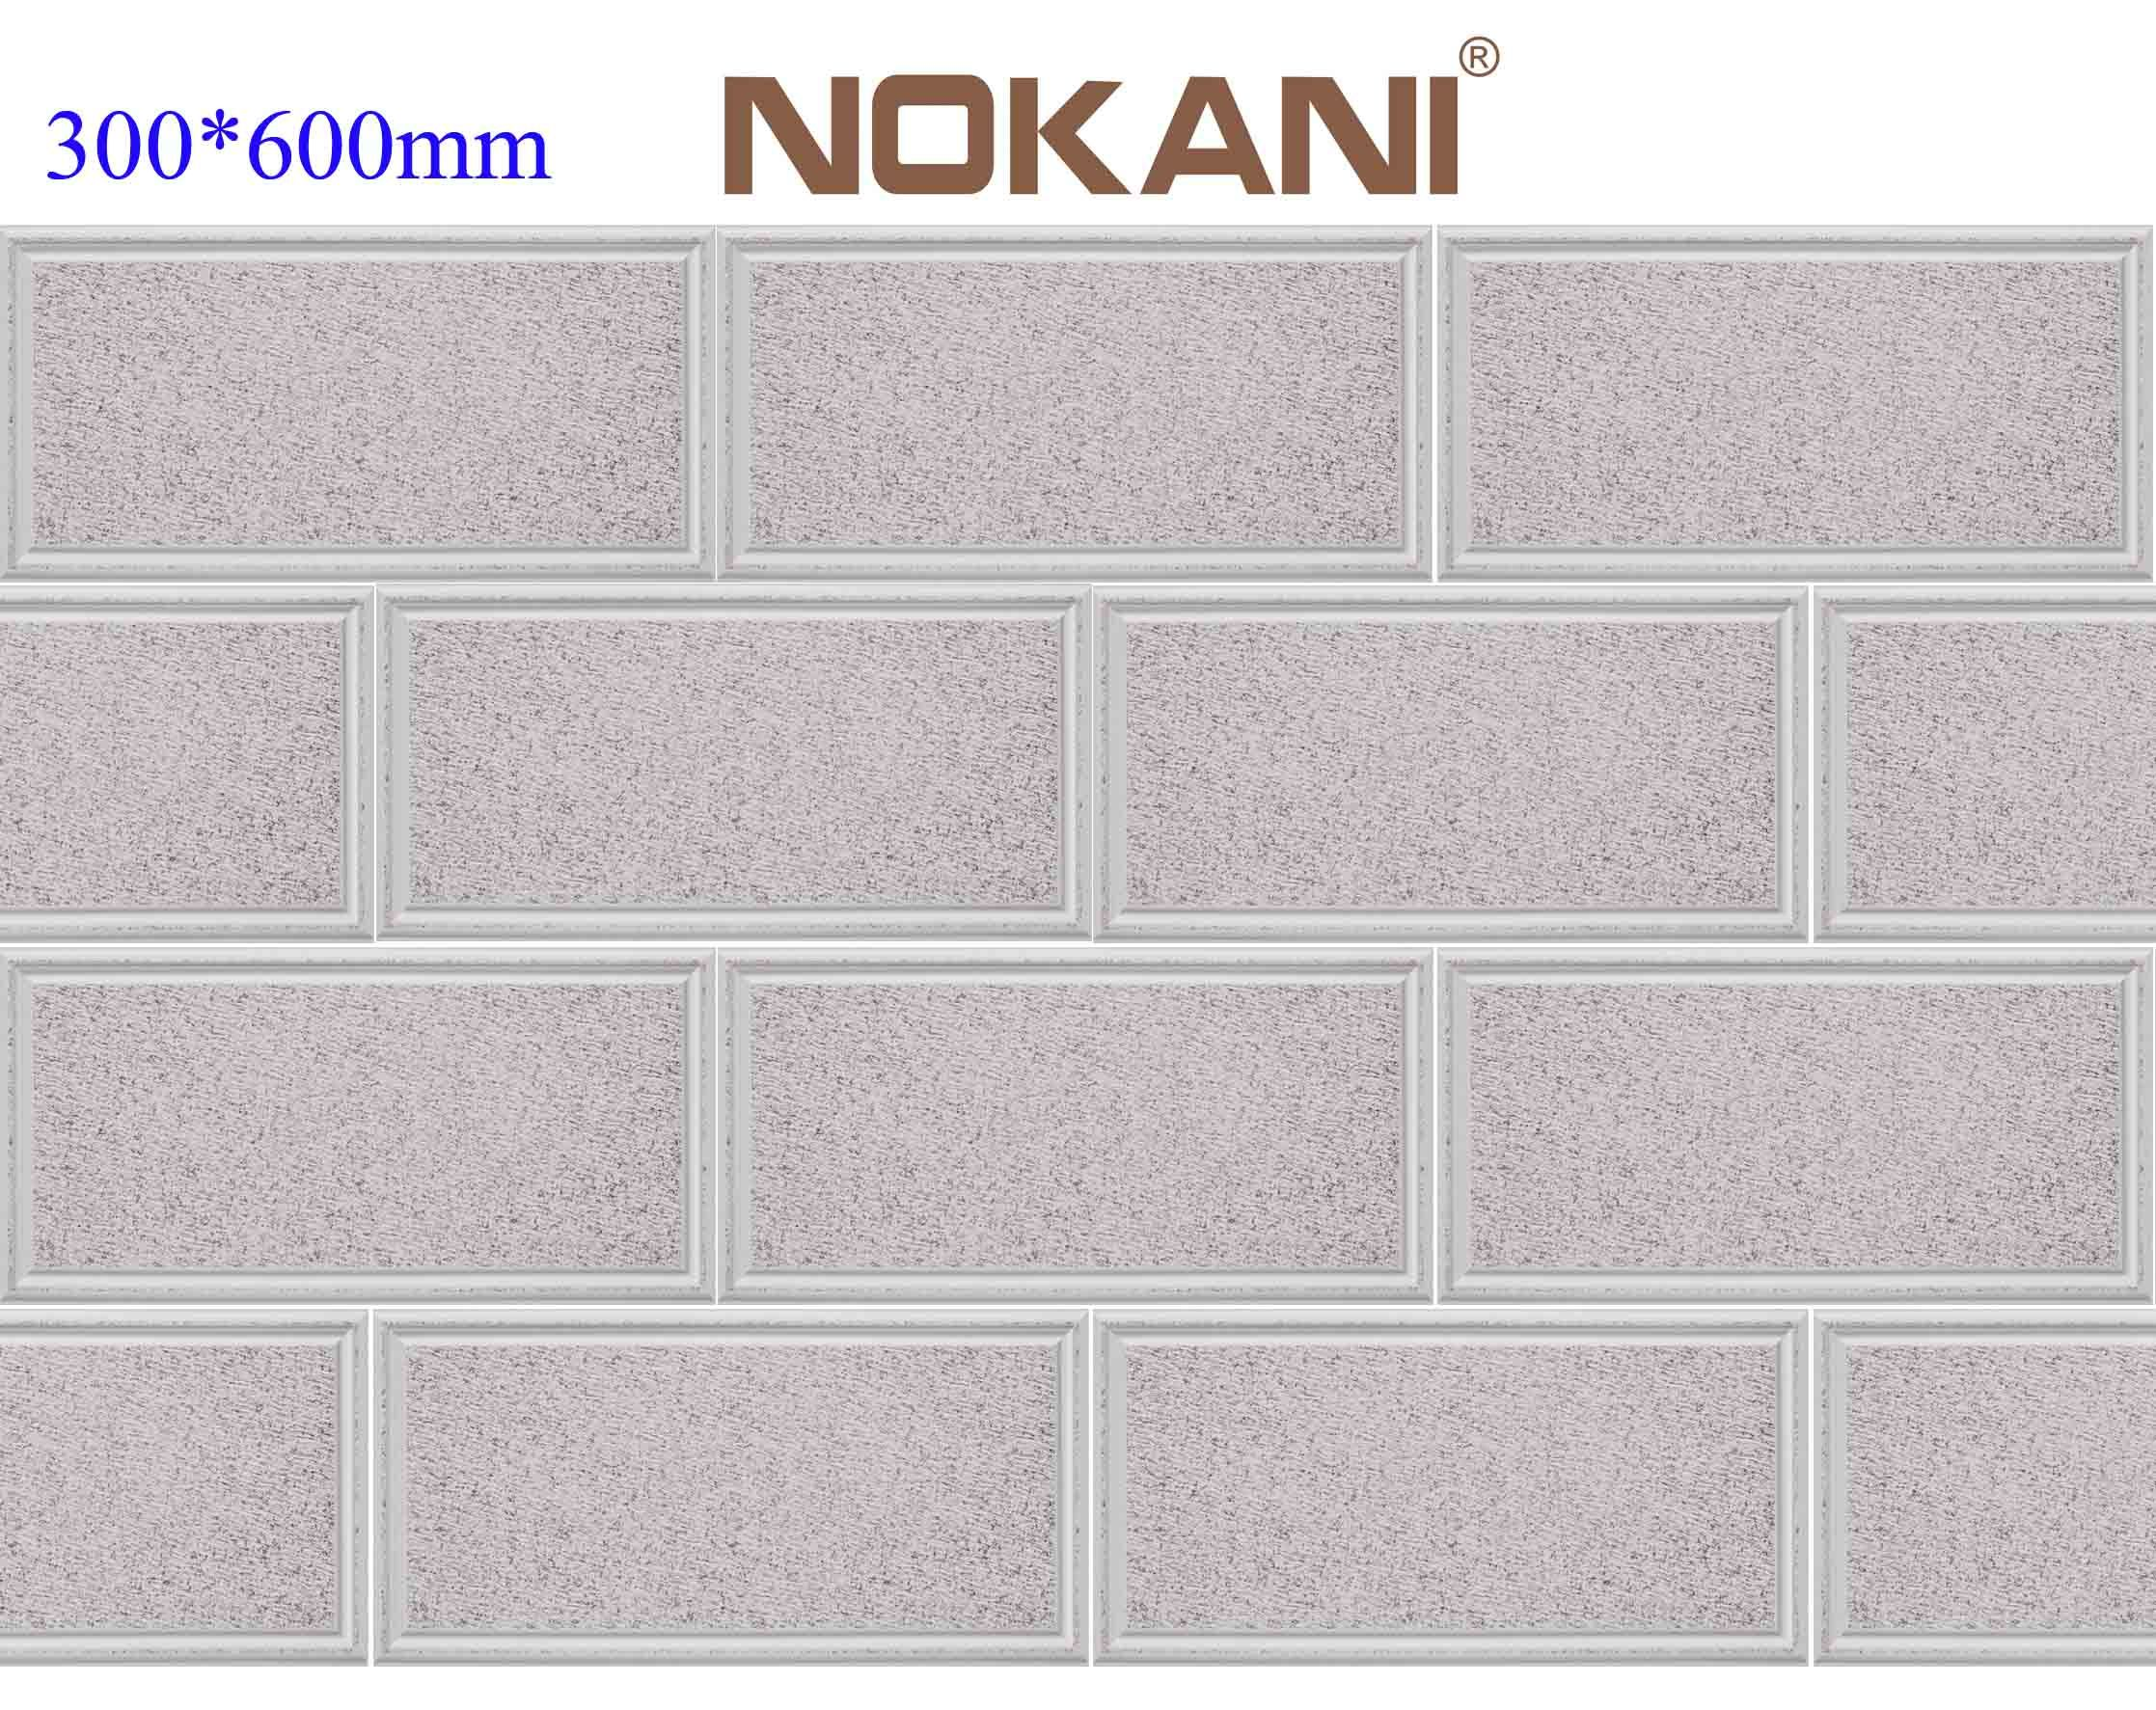 Ceramic tiles manufacturers in china images tile flooring design ceramic tiles manufacturer in malaysia image collections tile china ceramic tiles choice image tile flooring design doublecrazyfo Choice Image